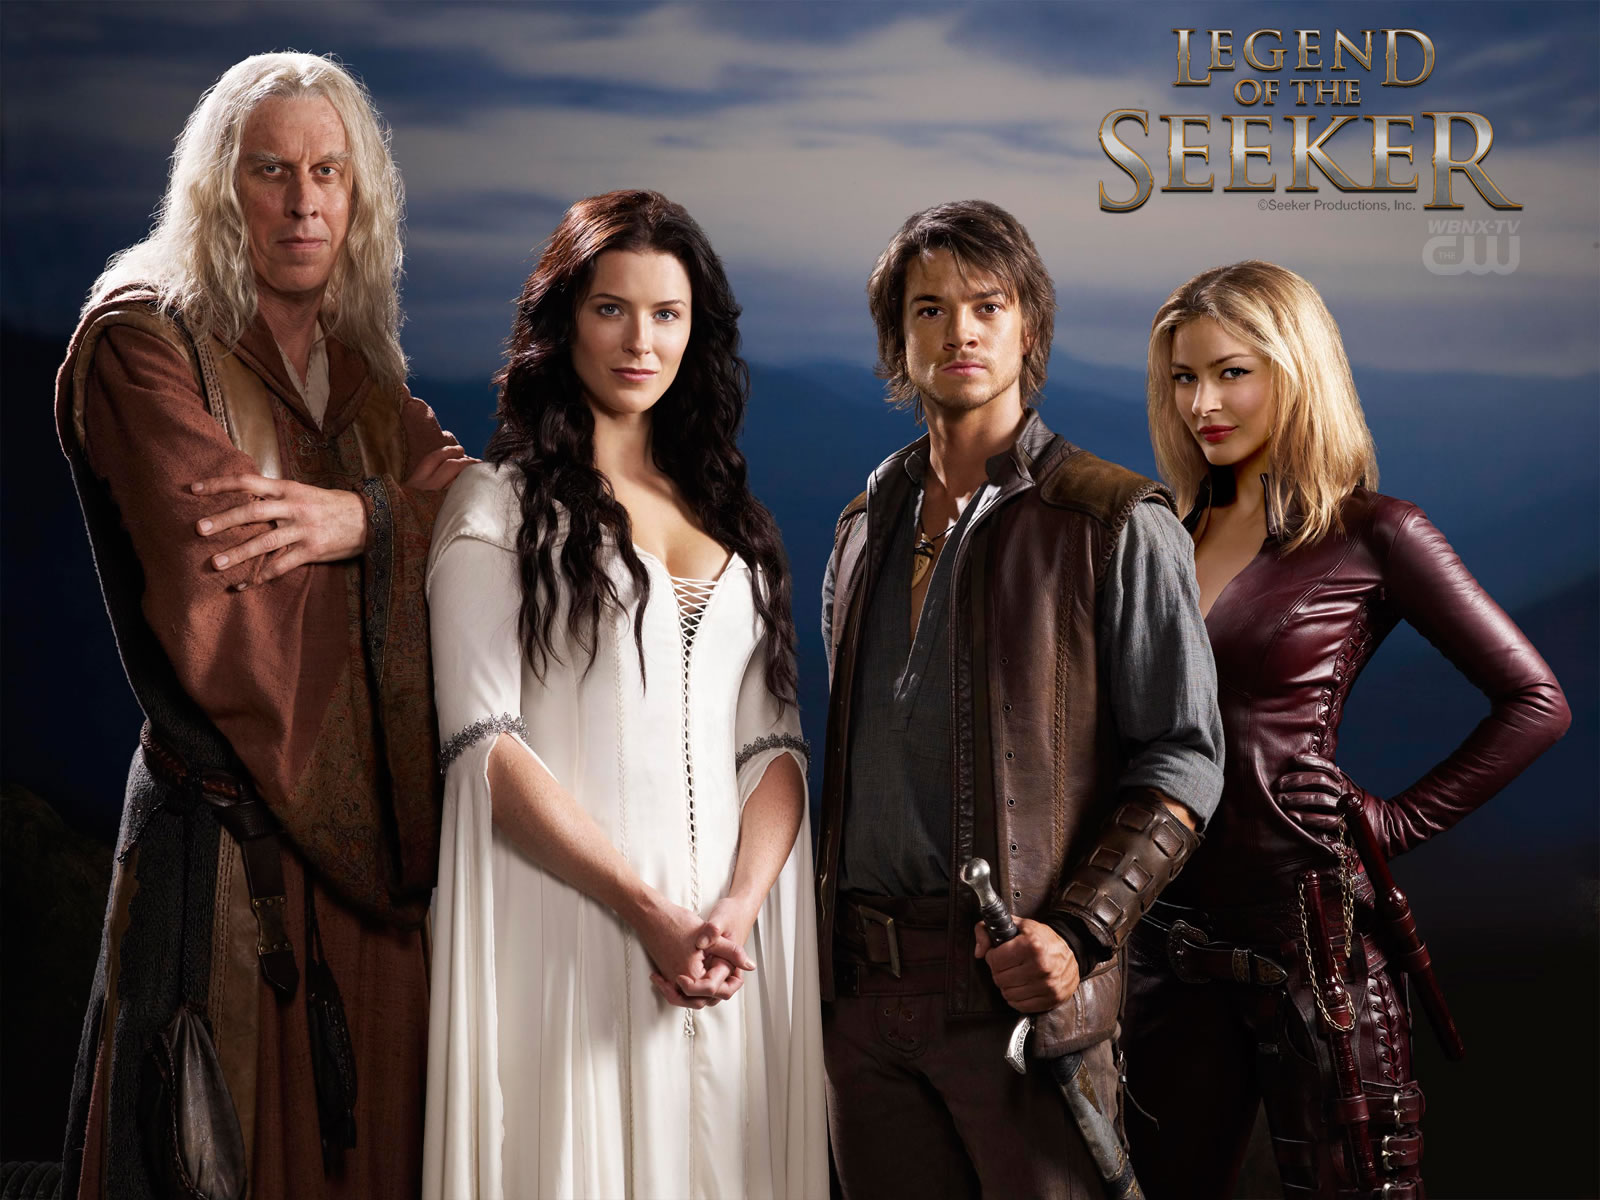 Legend of the Seeker Season 2 movie